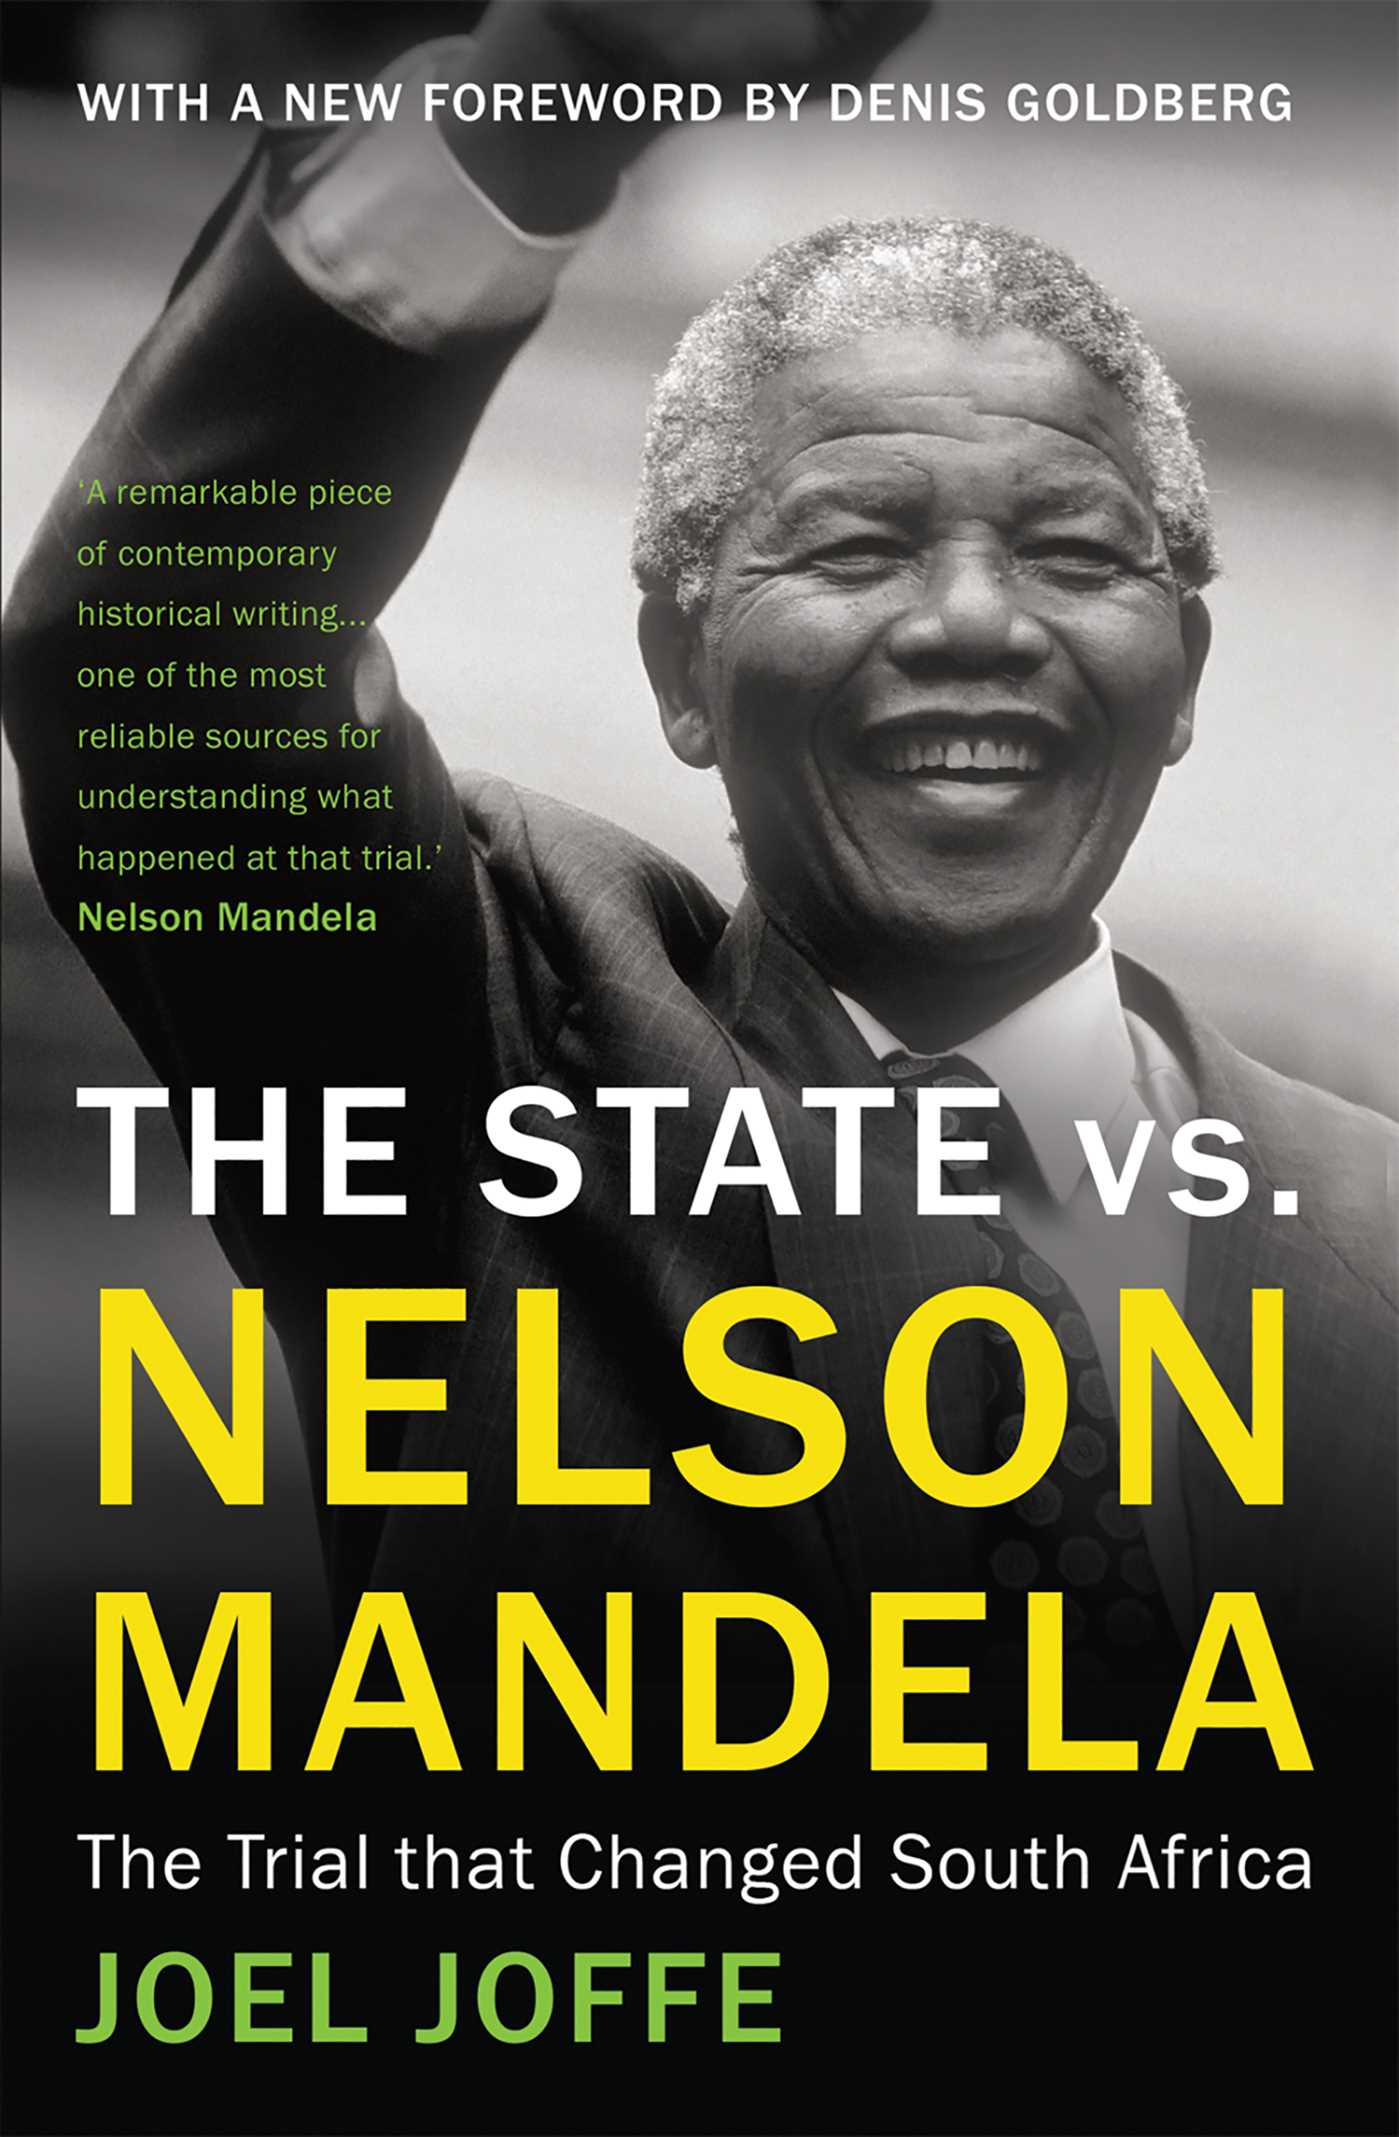 The State vs. Nelson Mandela: The Trial that Changed South Africa